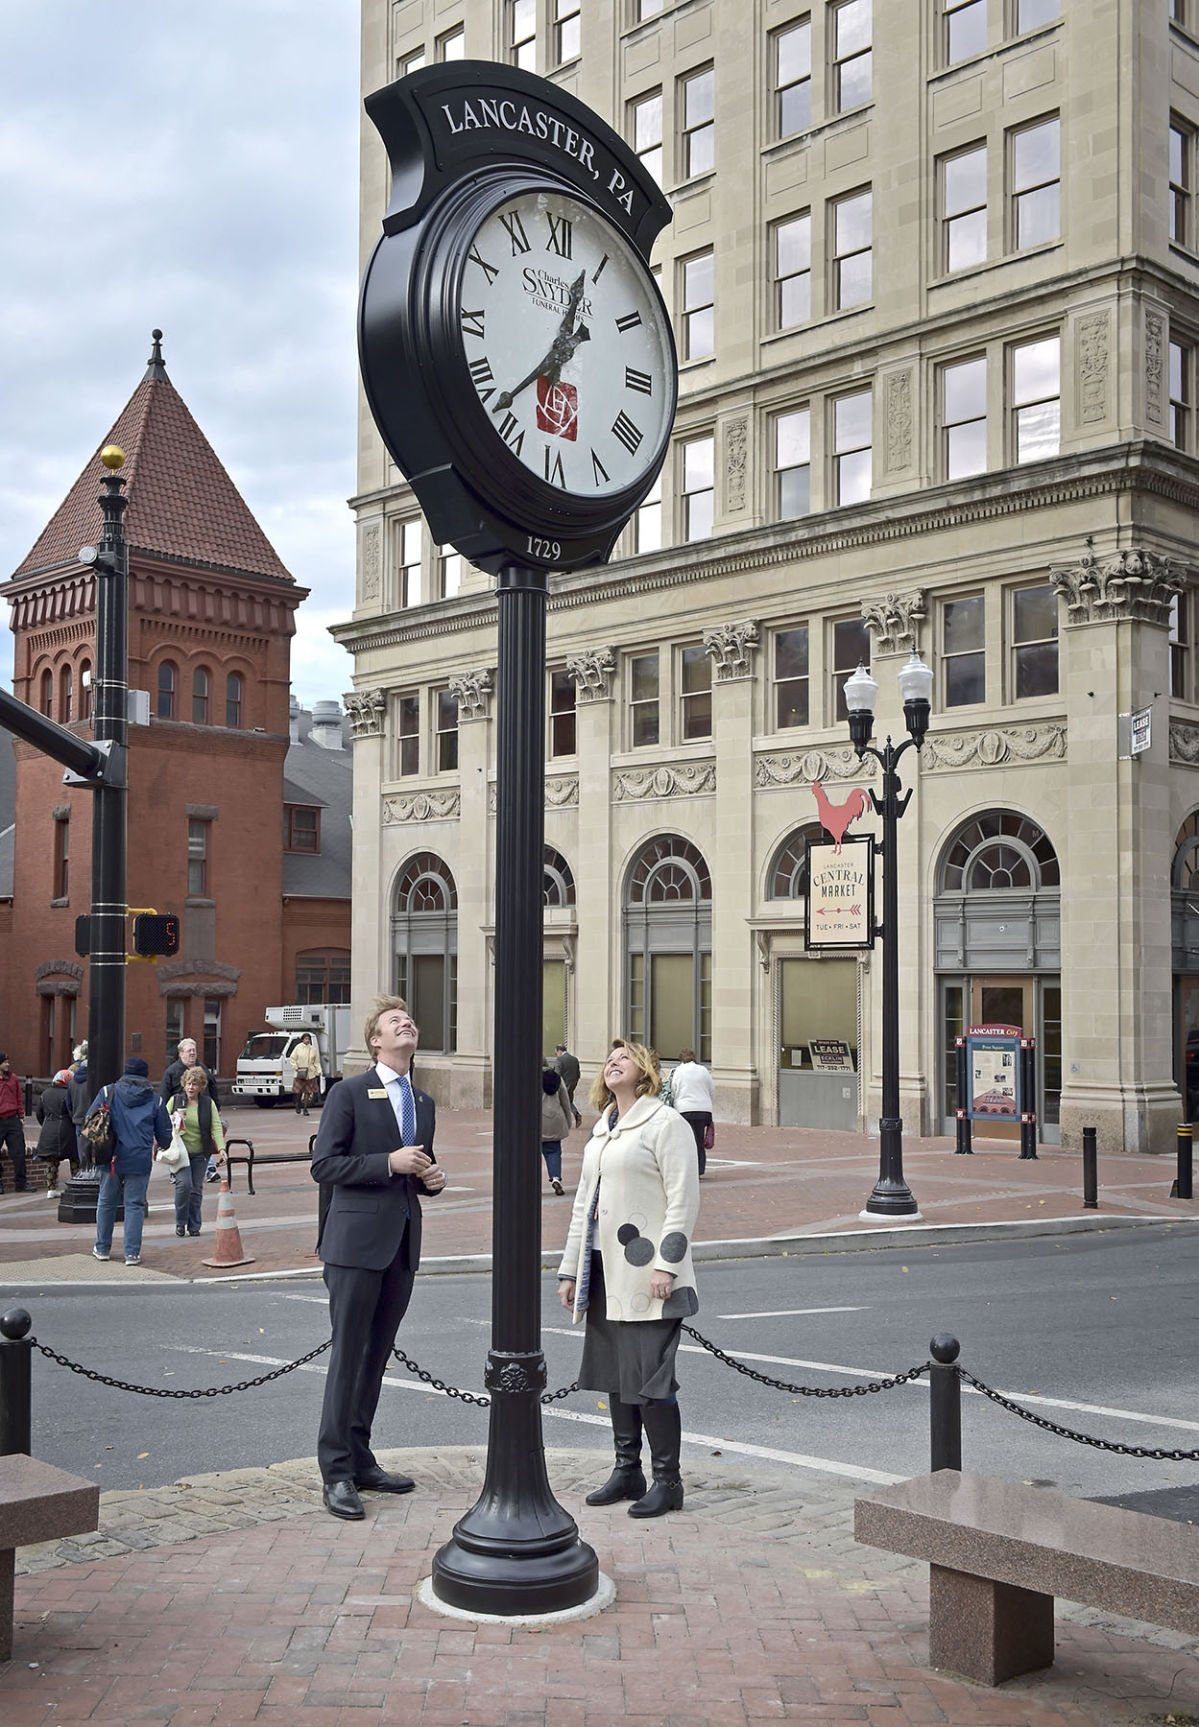 Charles Snyder Funeral Home donates Penn Square clock to Lancaster